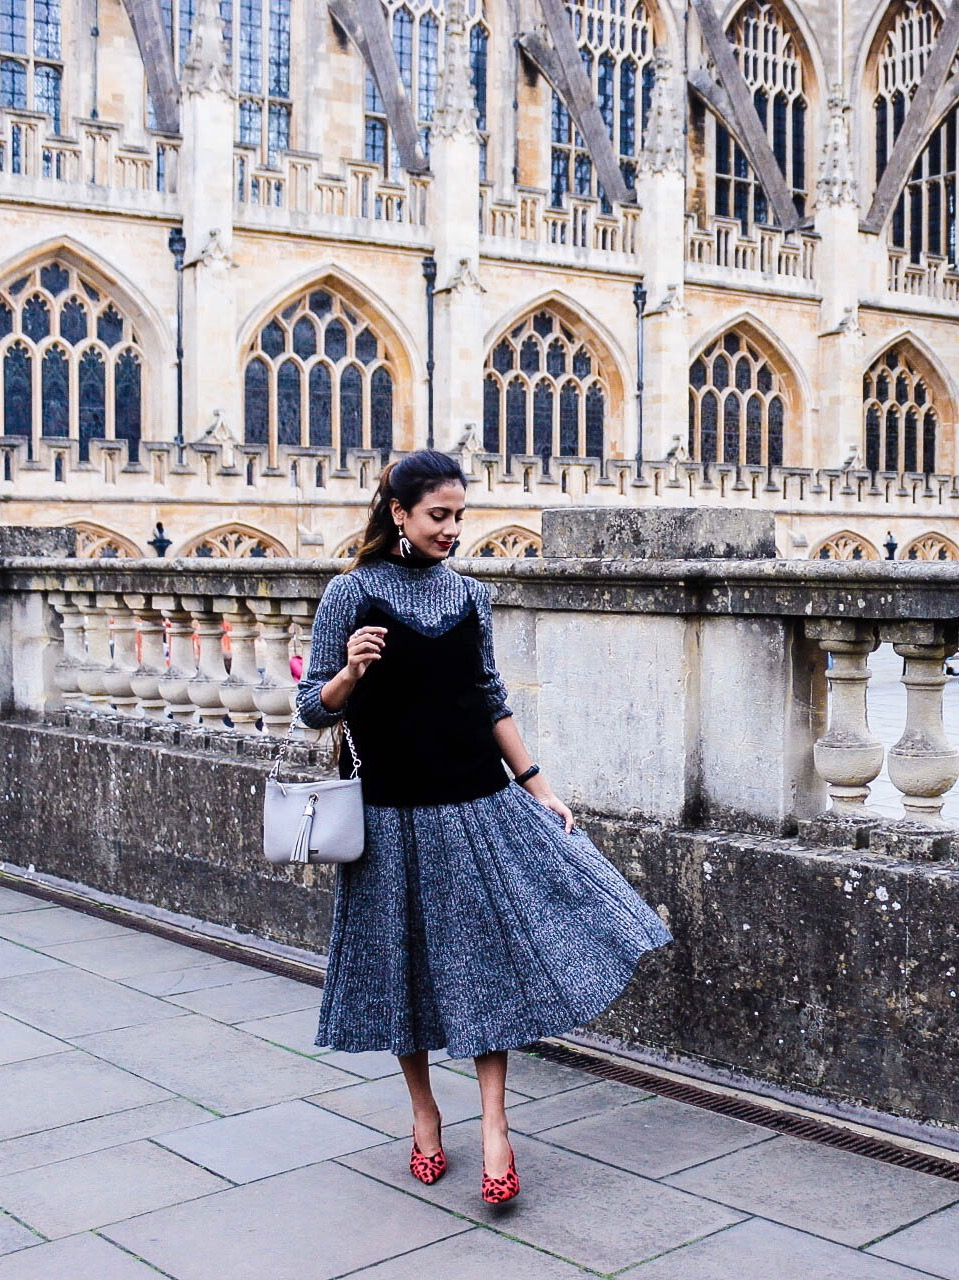 what to wear with midi skirt in winter, the midi skirt, matching outfit sets, matching skirt and top outfits, midi skirt ideas, knitwear trend, winter knit skirt, autumn styling, fresh styling 2016, fresh layering, layering idea 2016, street style, 2016 top street style, ribbed matching set, sweater matching set, chicwish, effortless chic, parisian look, chicwish skirt, chicwish review, chicwish outfit, polished midi, how to wear midi, style midi, red leopard shoes, best blogger outfits, 2016 blogger outfit, 2016 winter outfit idea, winter outfit idea, slingback, topshop slingback, lip colour with grey, jumper set, uk blog, london blog, top indian blog, indian luxury blog, styling a midi skirt, midi skirt and sweater, midi skirt and blouse, high skirt, grey midi skirt outfit, simple skirt, modern skirts, midi skirt fashion, midi skirt trend